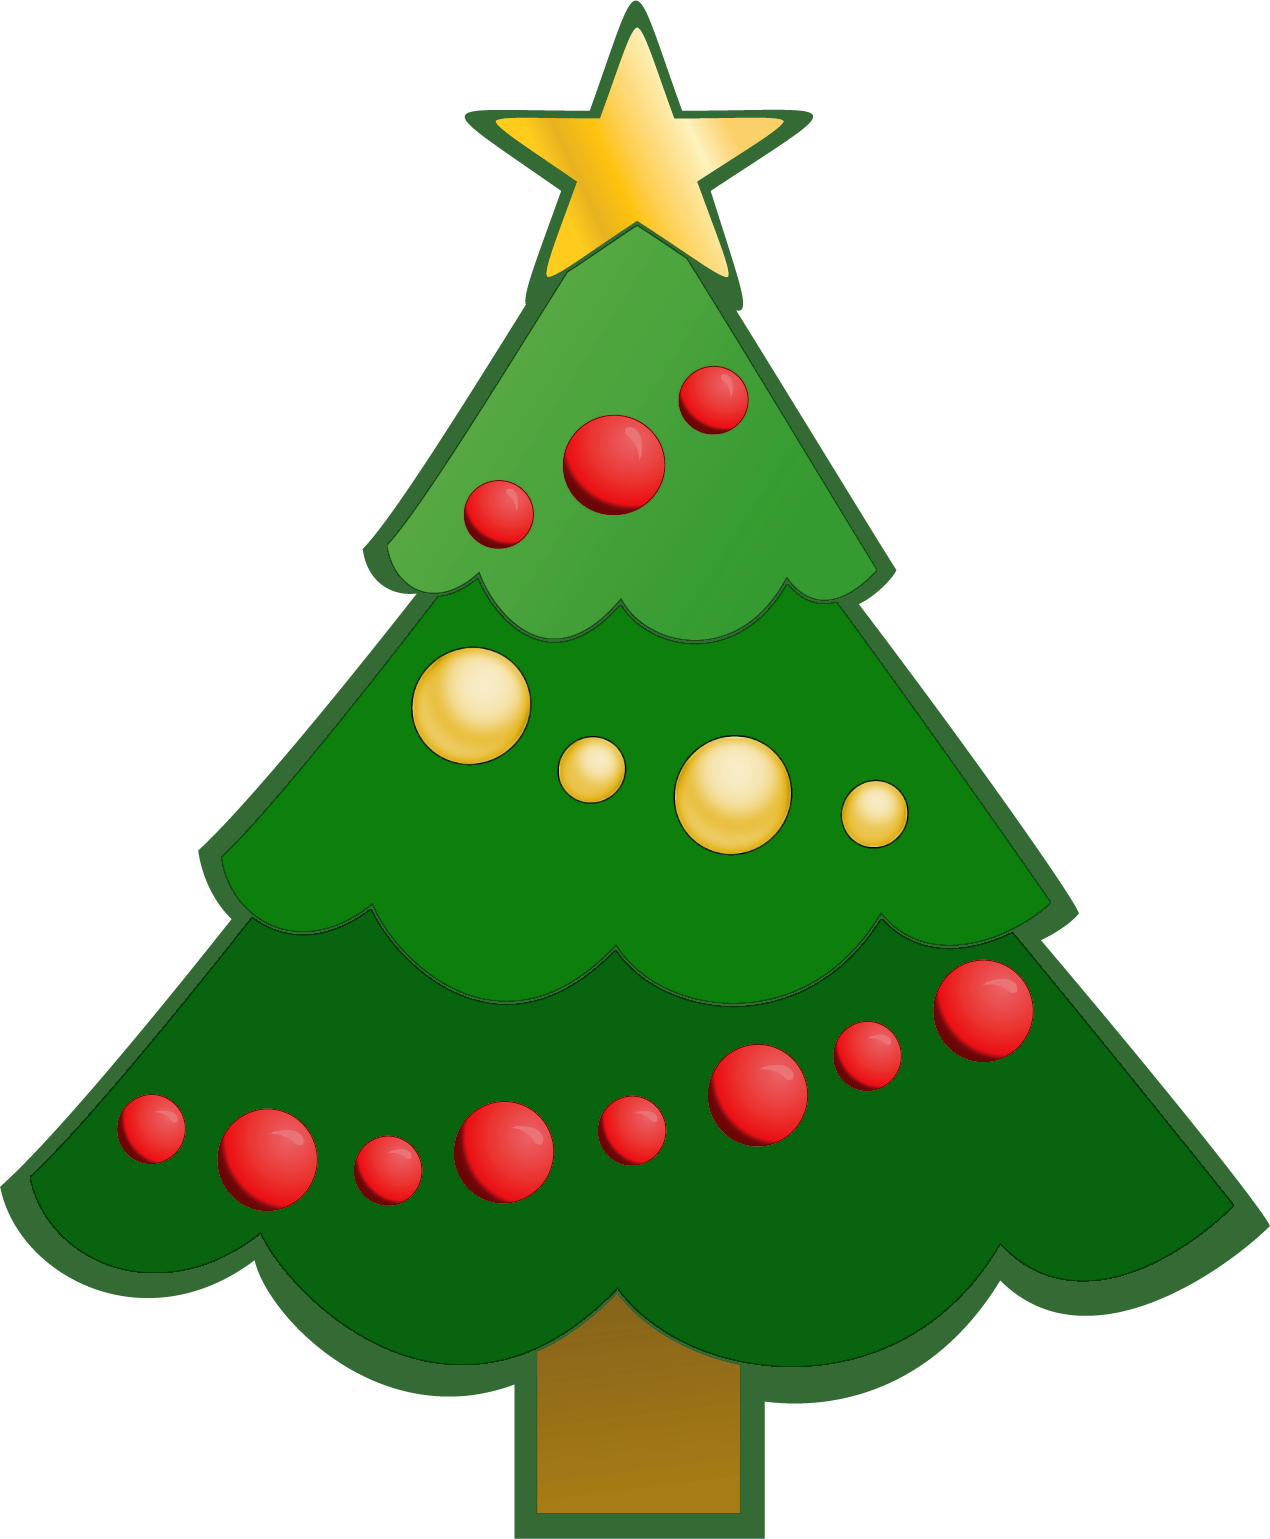 Easy at getdrawings com. Gingerbread clipart christmas tree